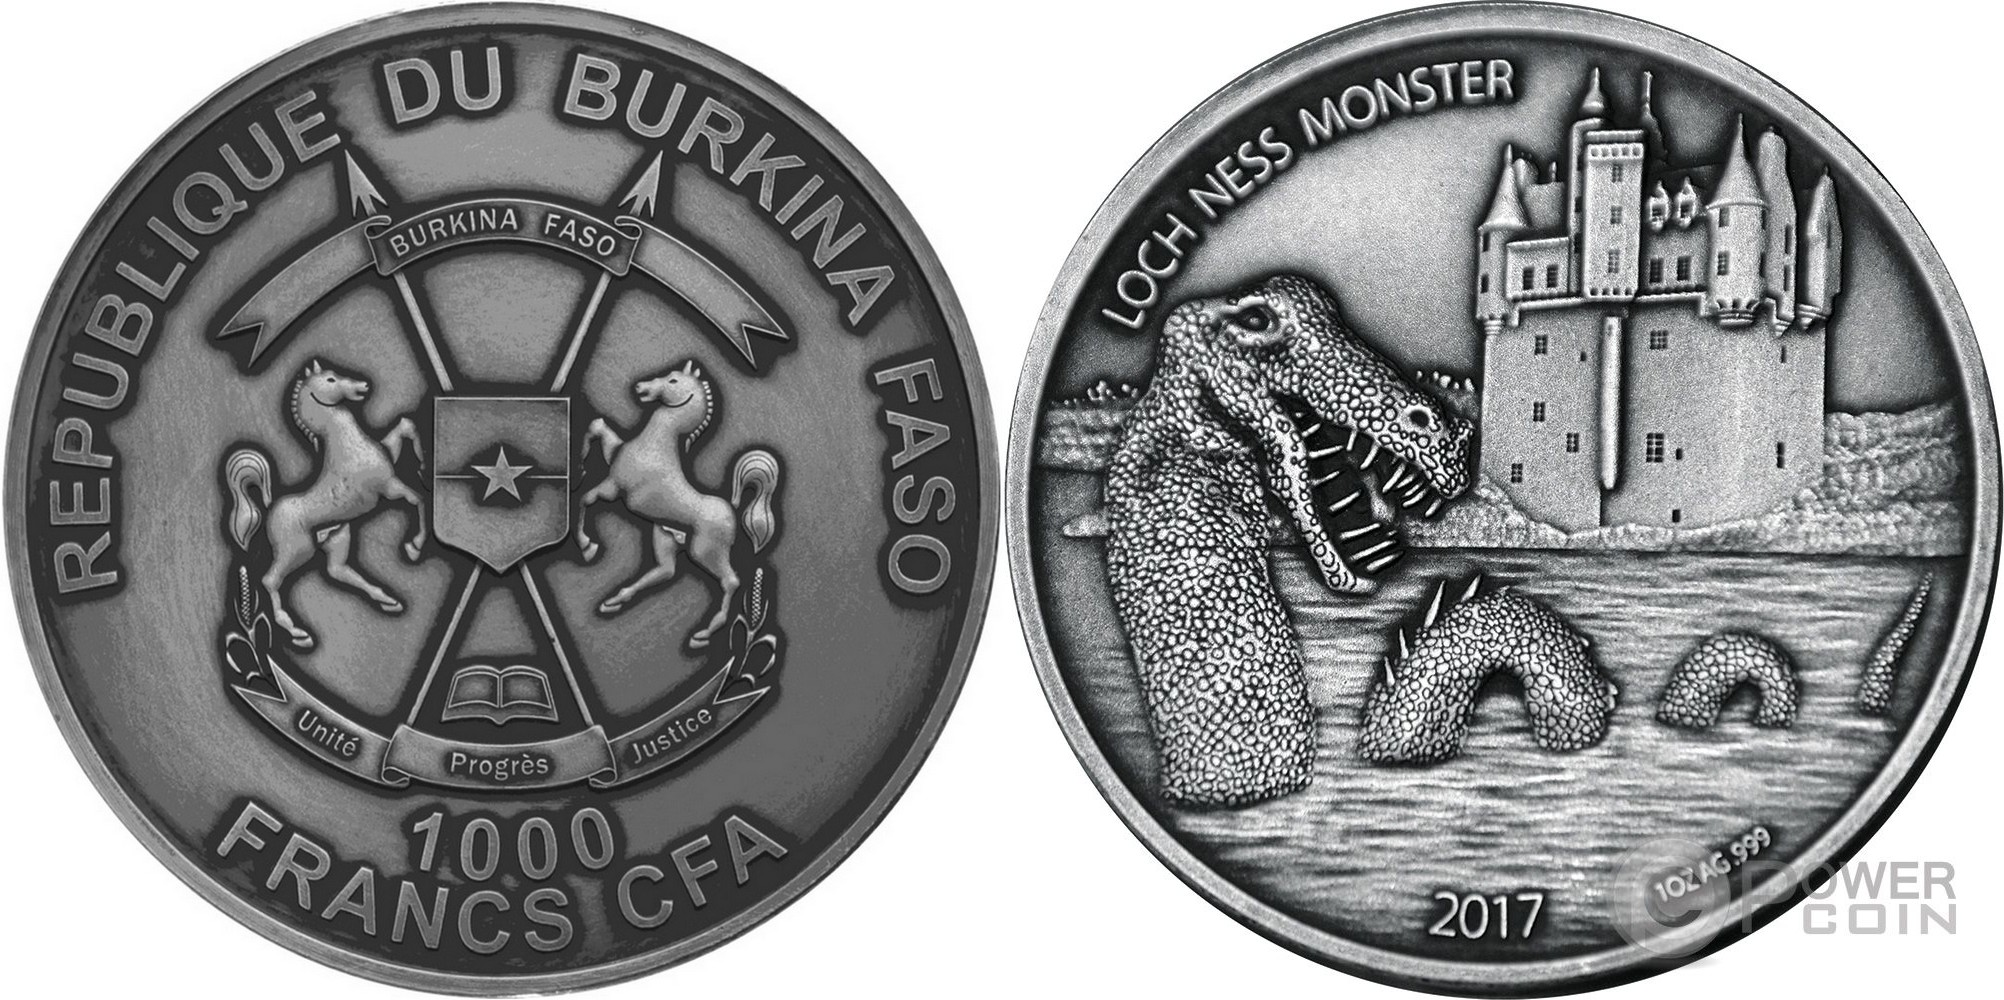 burkina faso 2017 monstre du loch ness